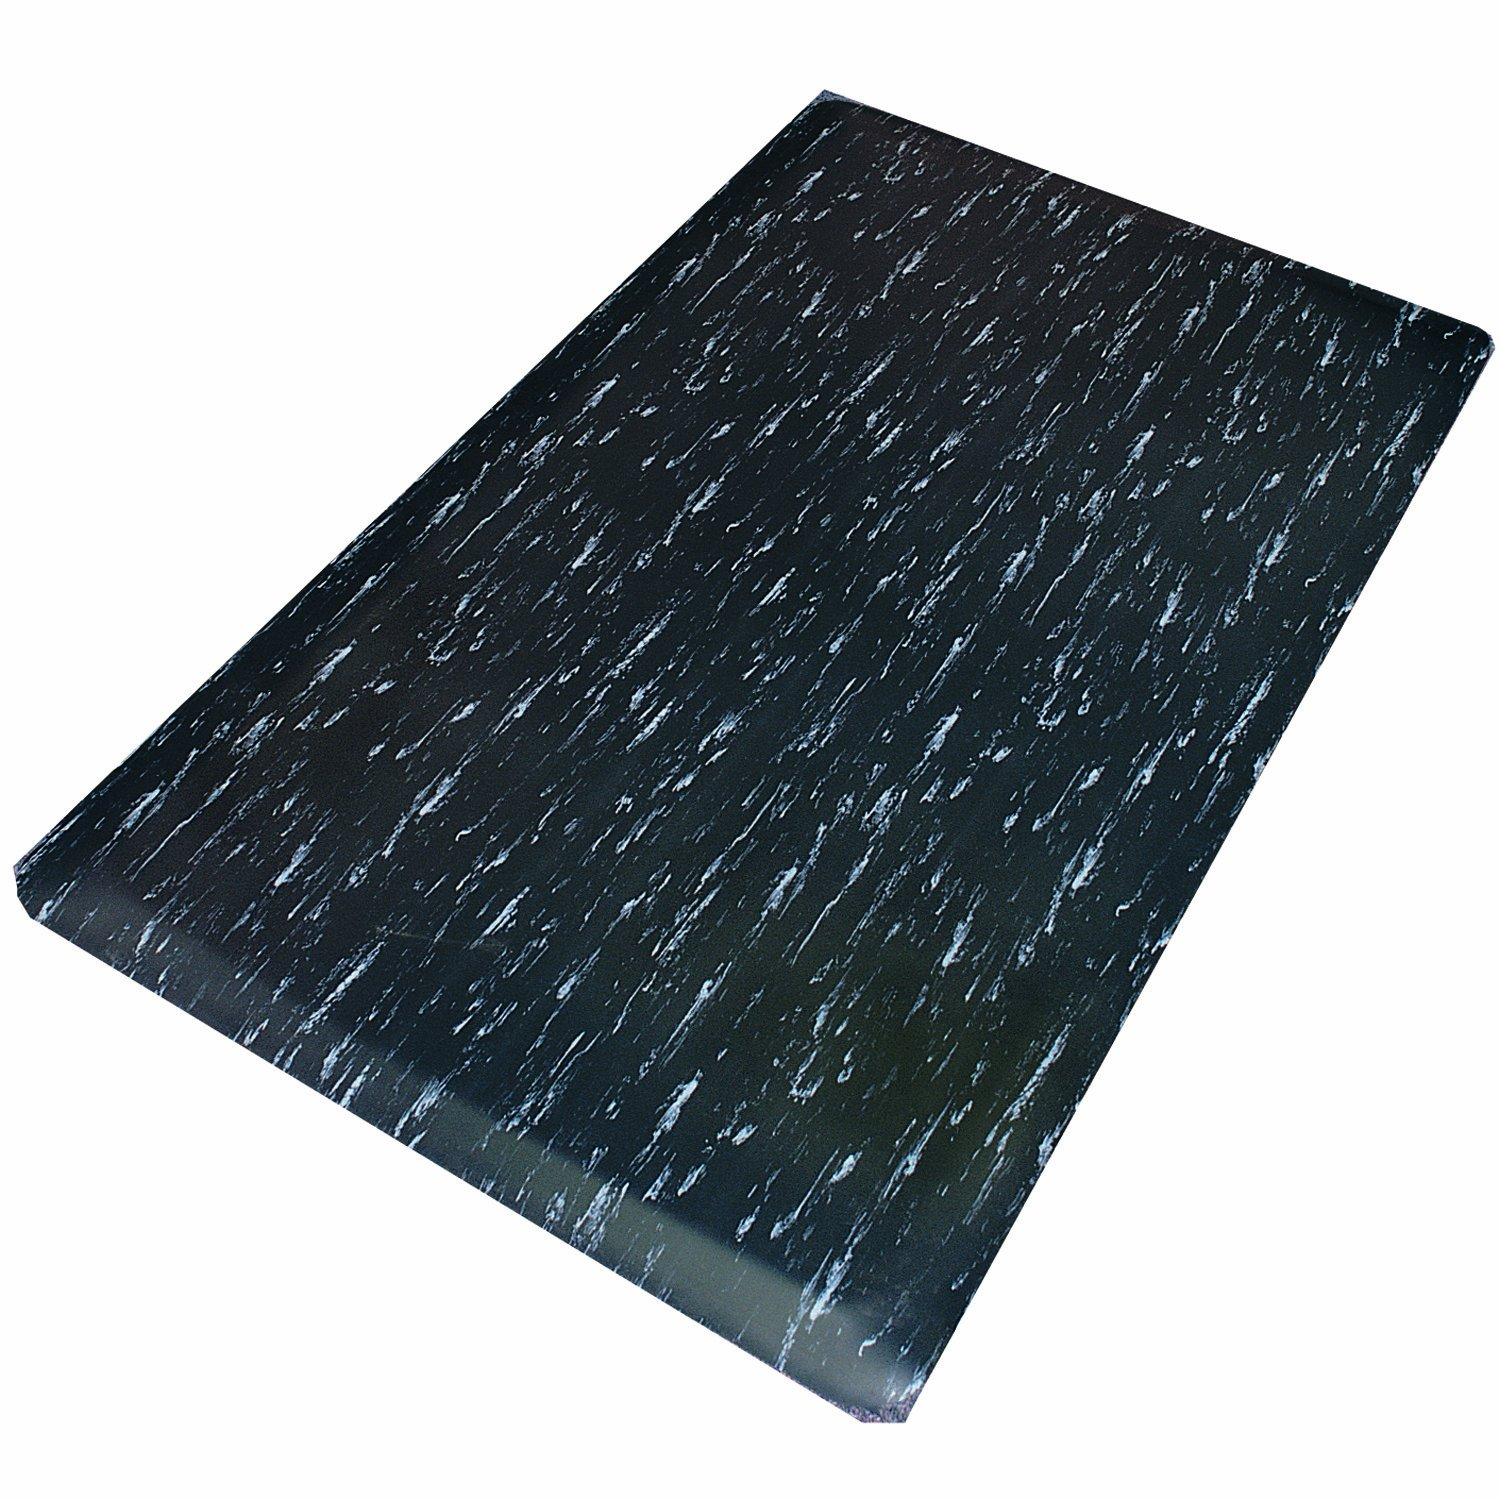 Rhino Mats TT-2436BWRNS Marbleized Tile Top Anti-Fatigue Mat with Rhi-No-Slip, 2' Width x 3' Length x 1/2'' Thickness, Black/White